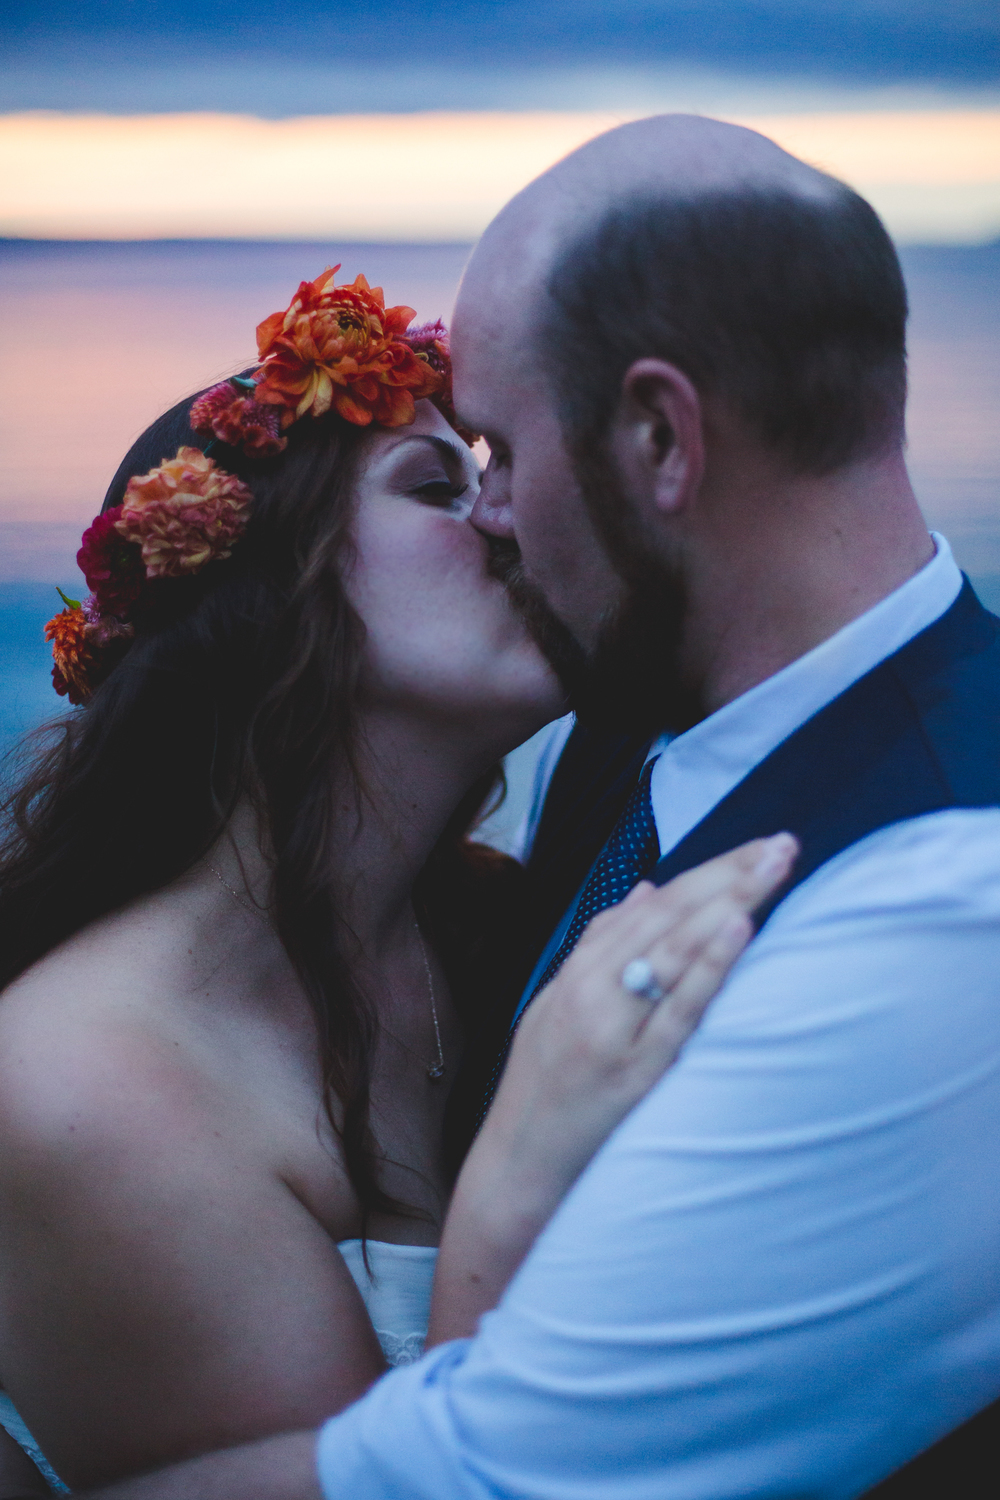 bride-and-groom-gorgeous-wedding-natural-light-sunset